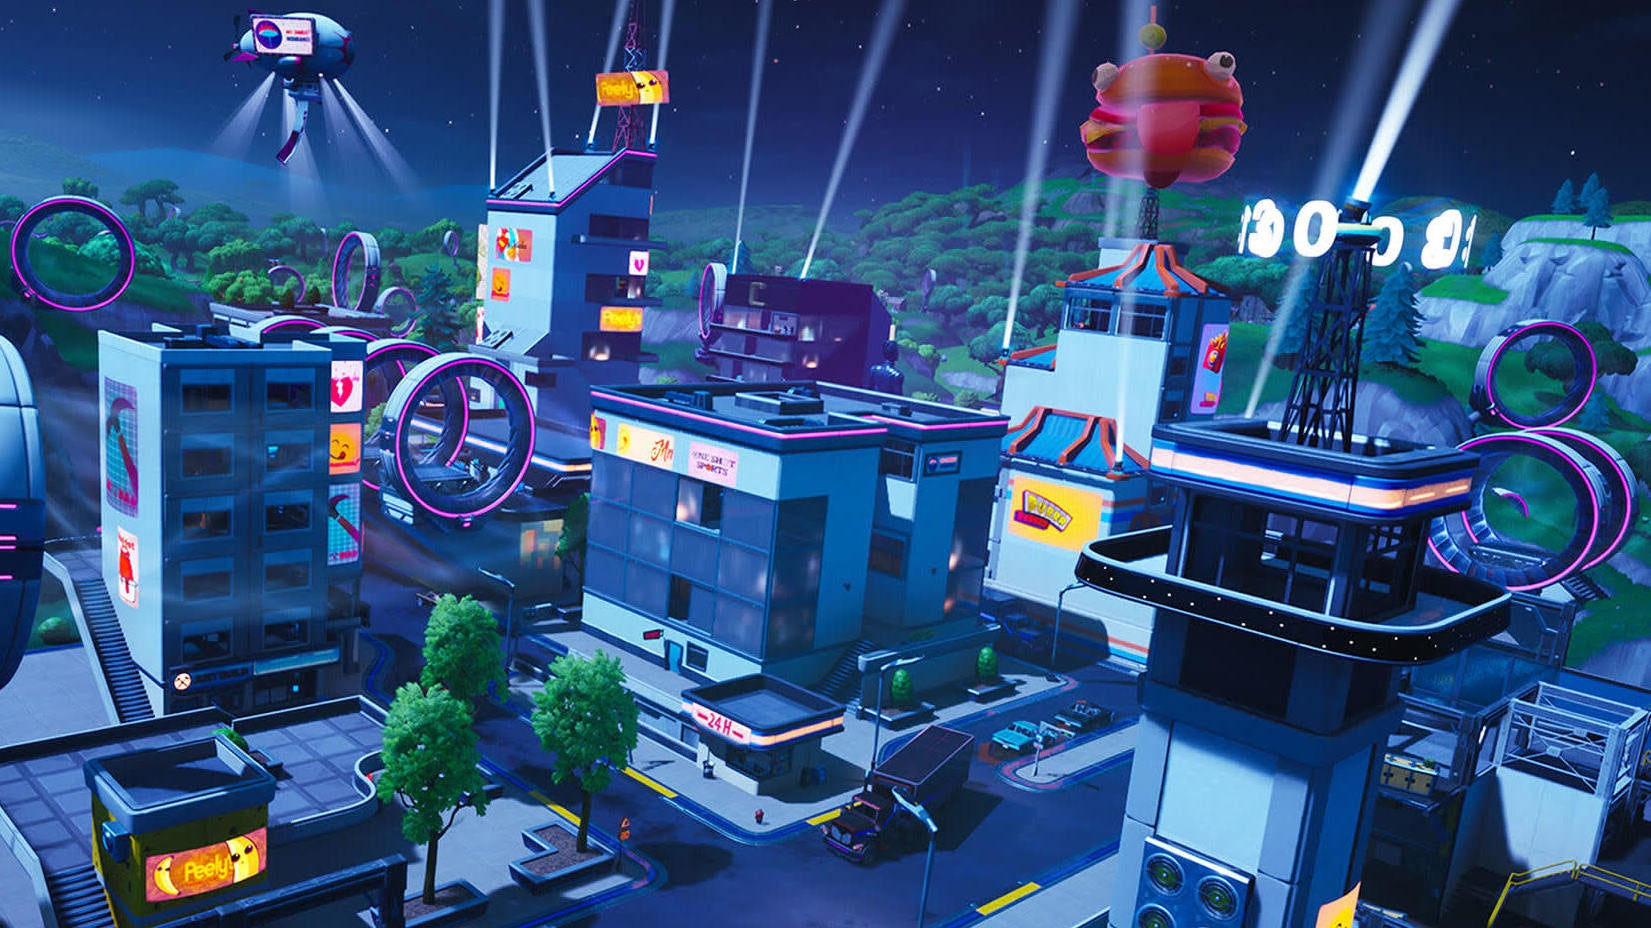 Fortnite's New Season Gives Tilted Towers A Cyberpunk Overhaul